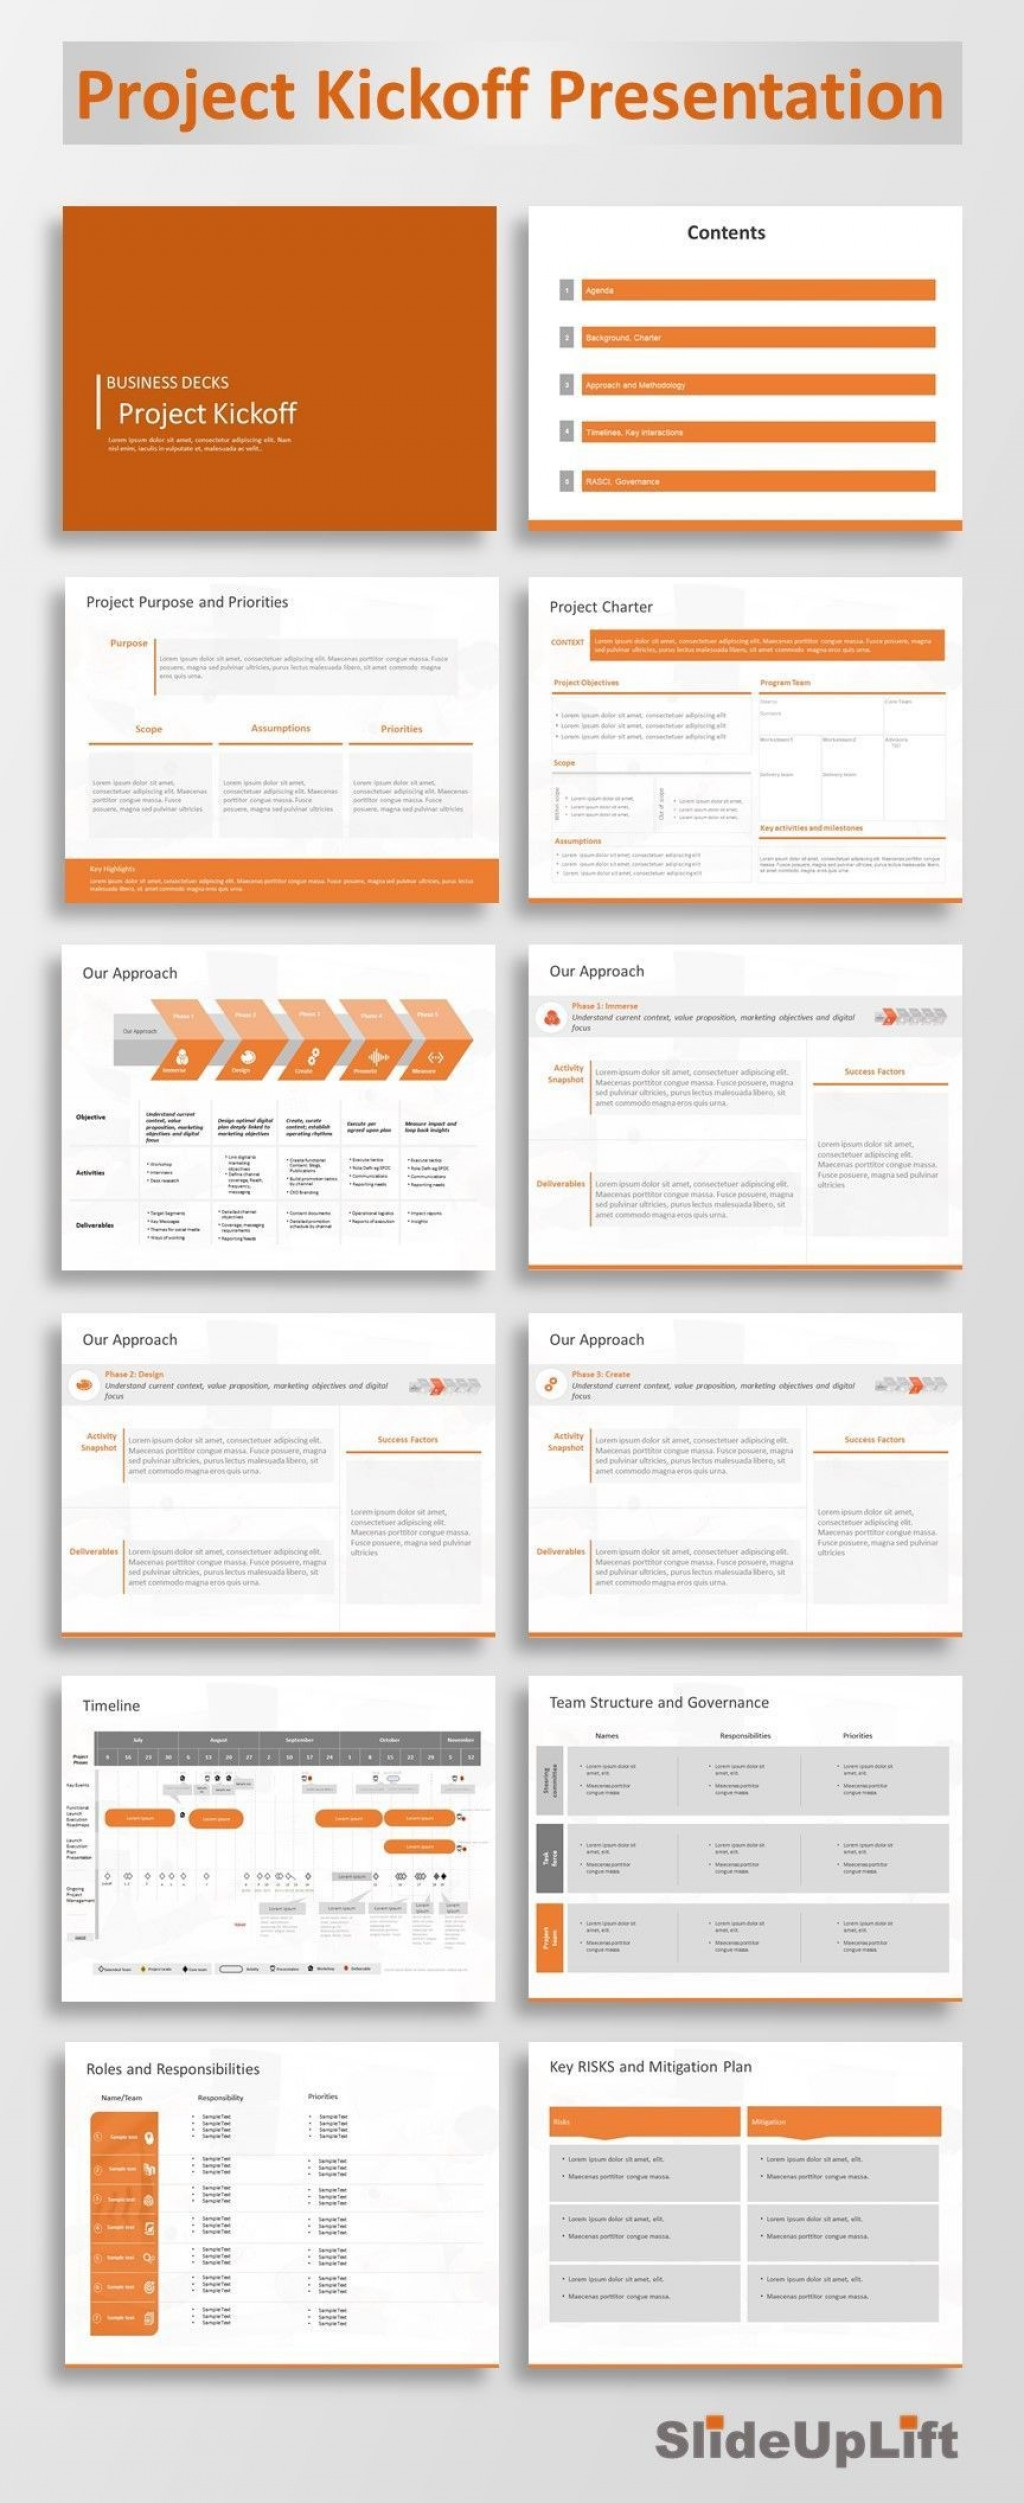 003 Fascinating Project Kick Off Template Ppt Idea  Meeting Management KickoffLarge